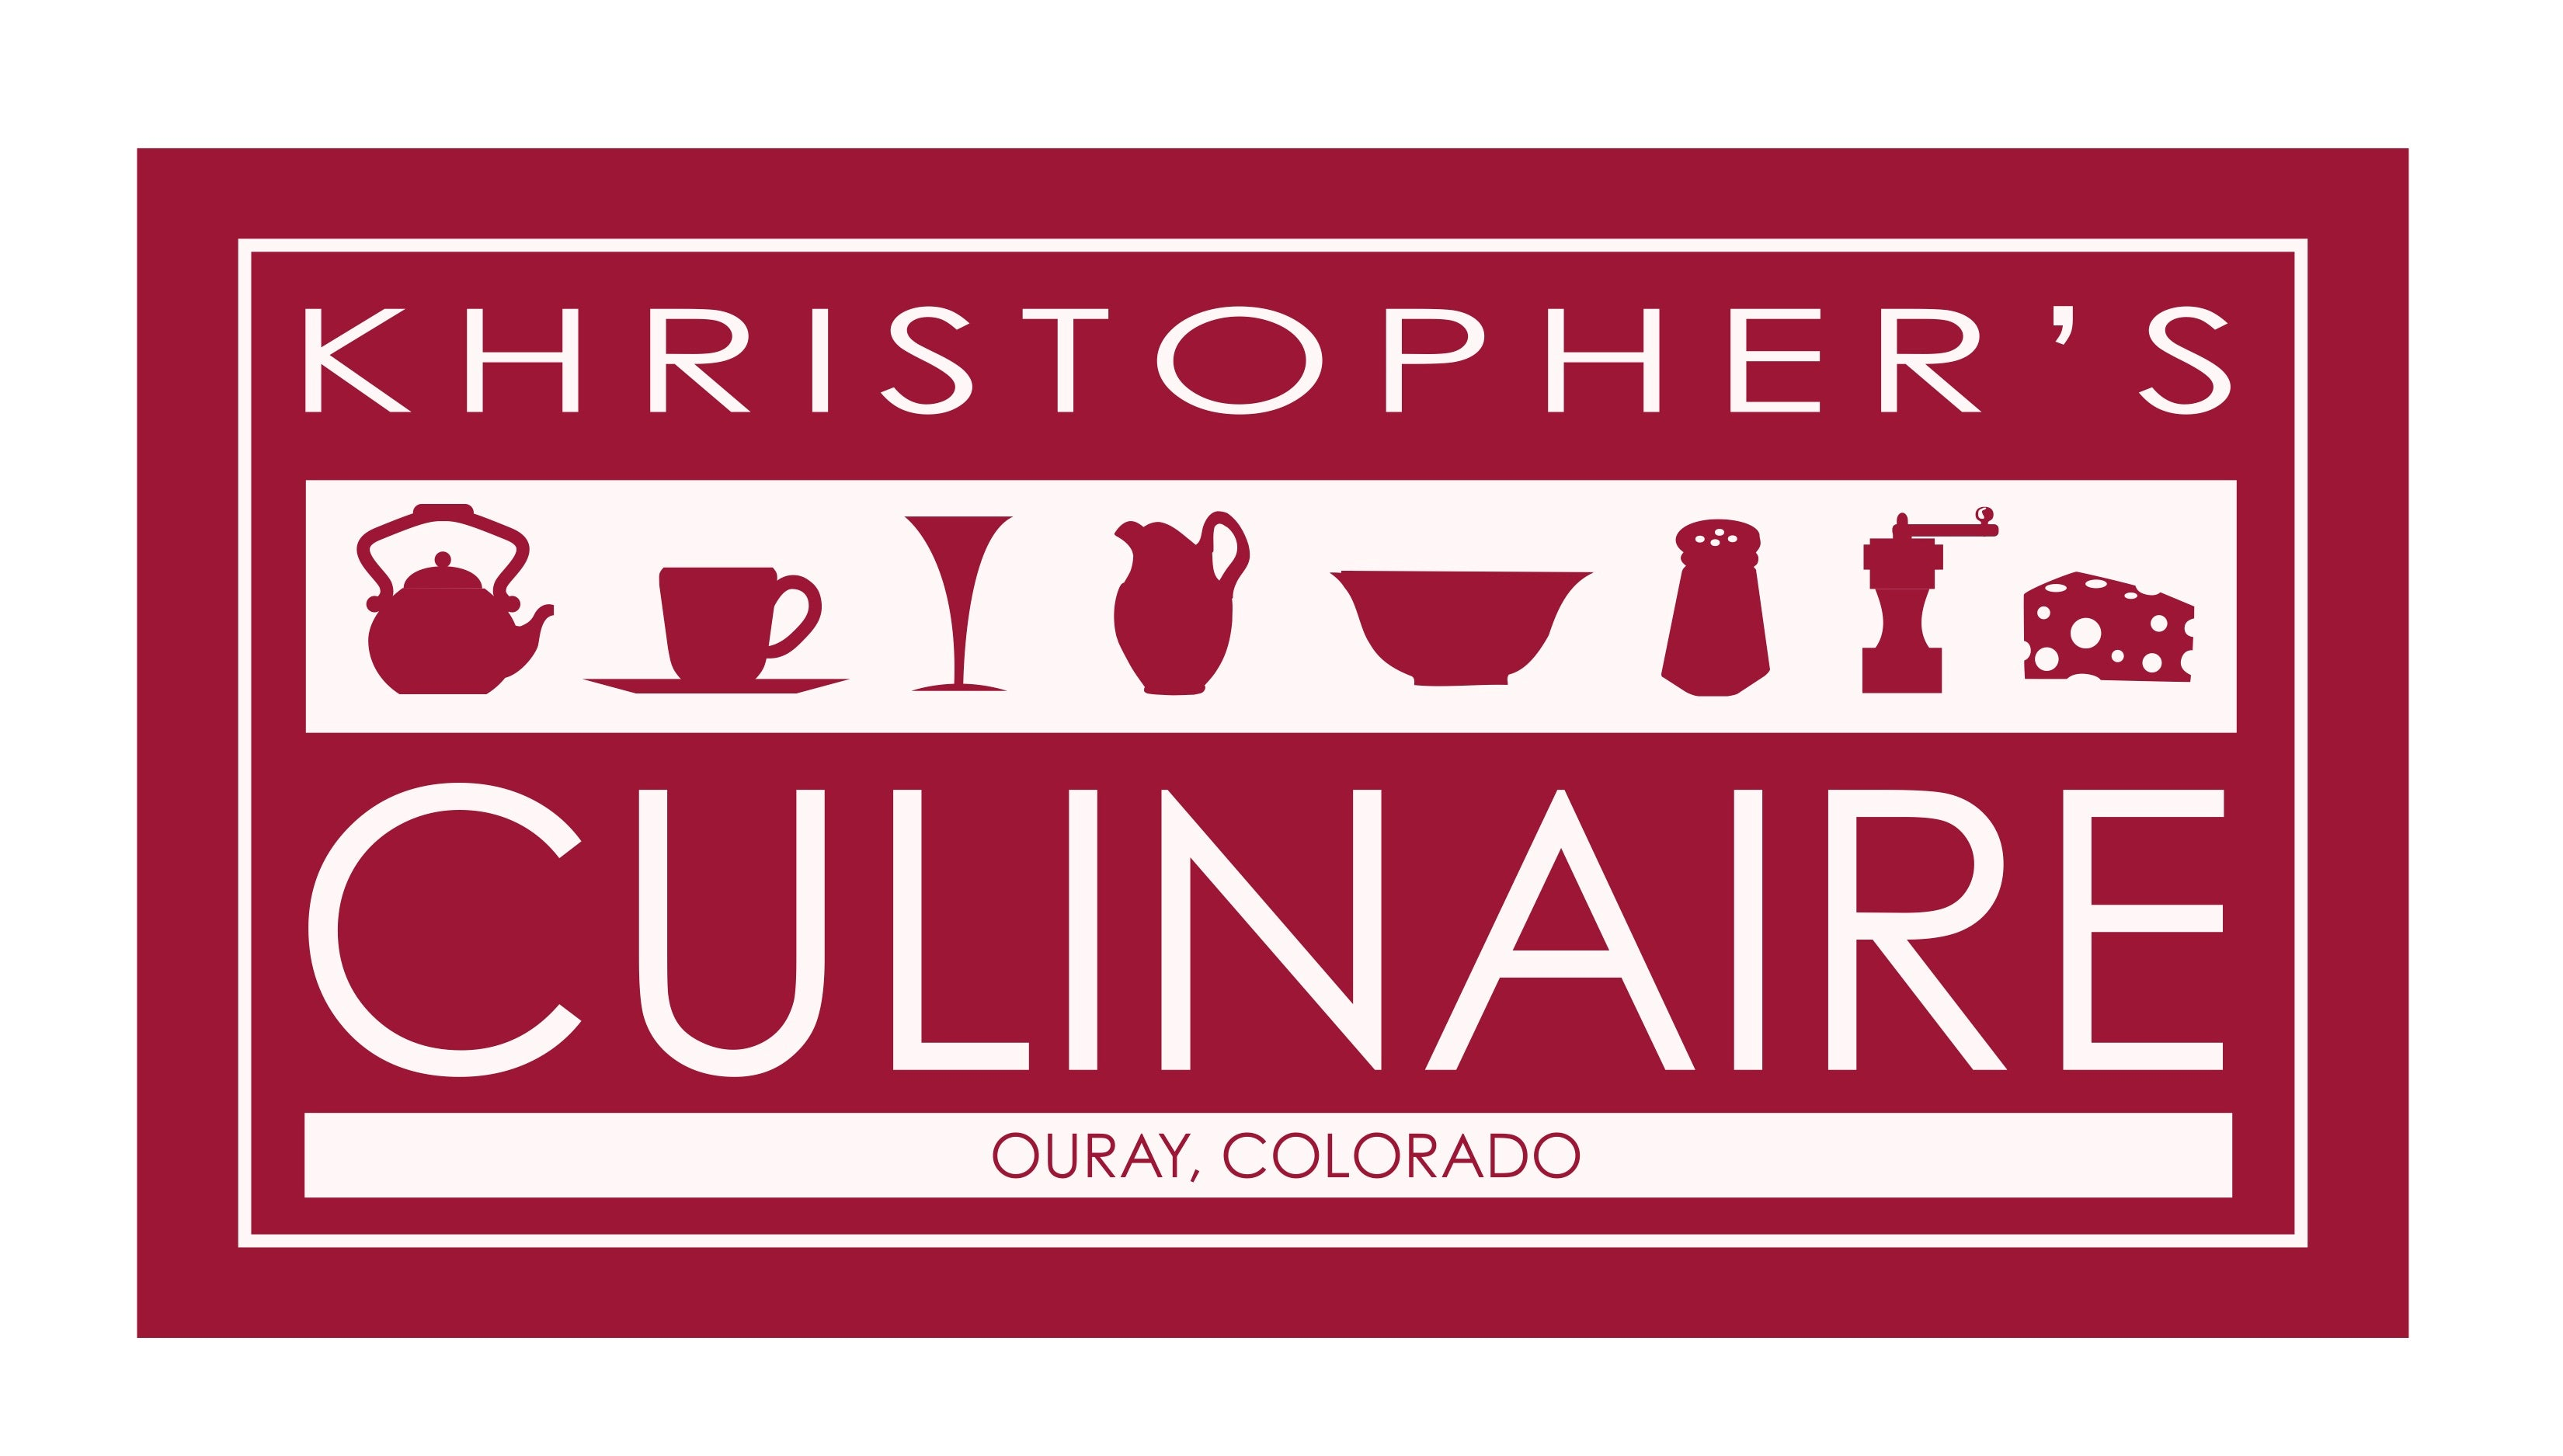 Khristopher's Culinaire logo